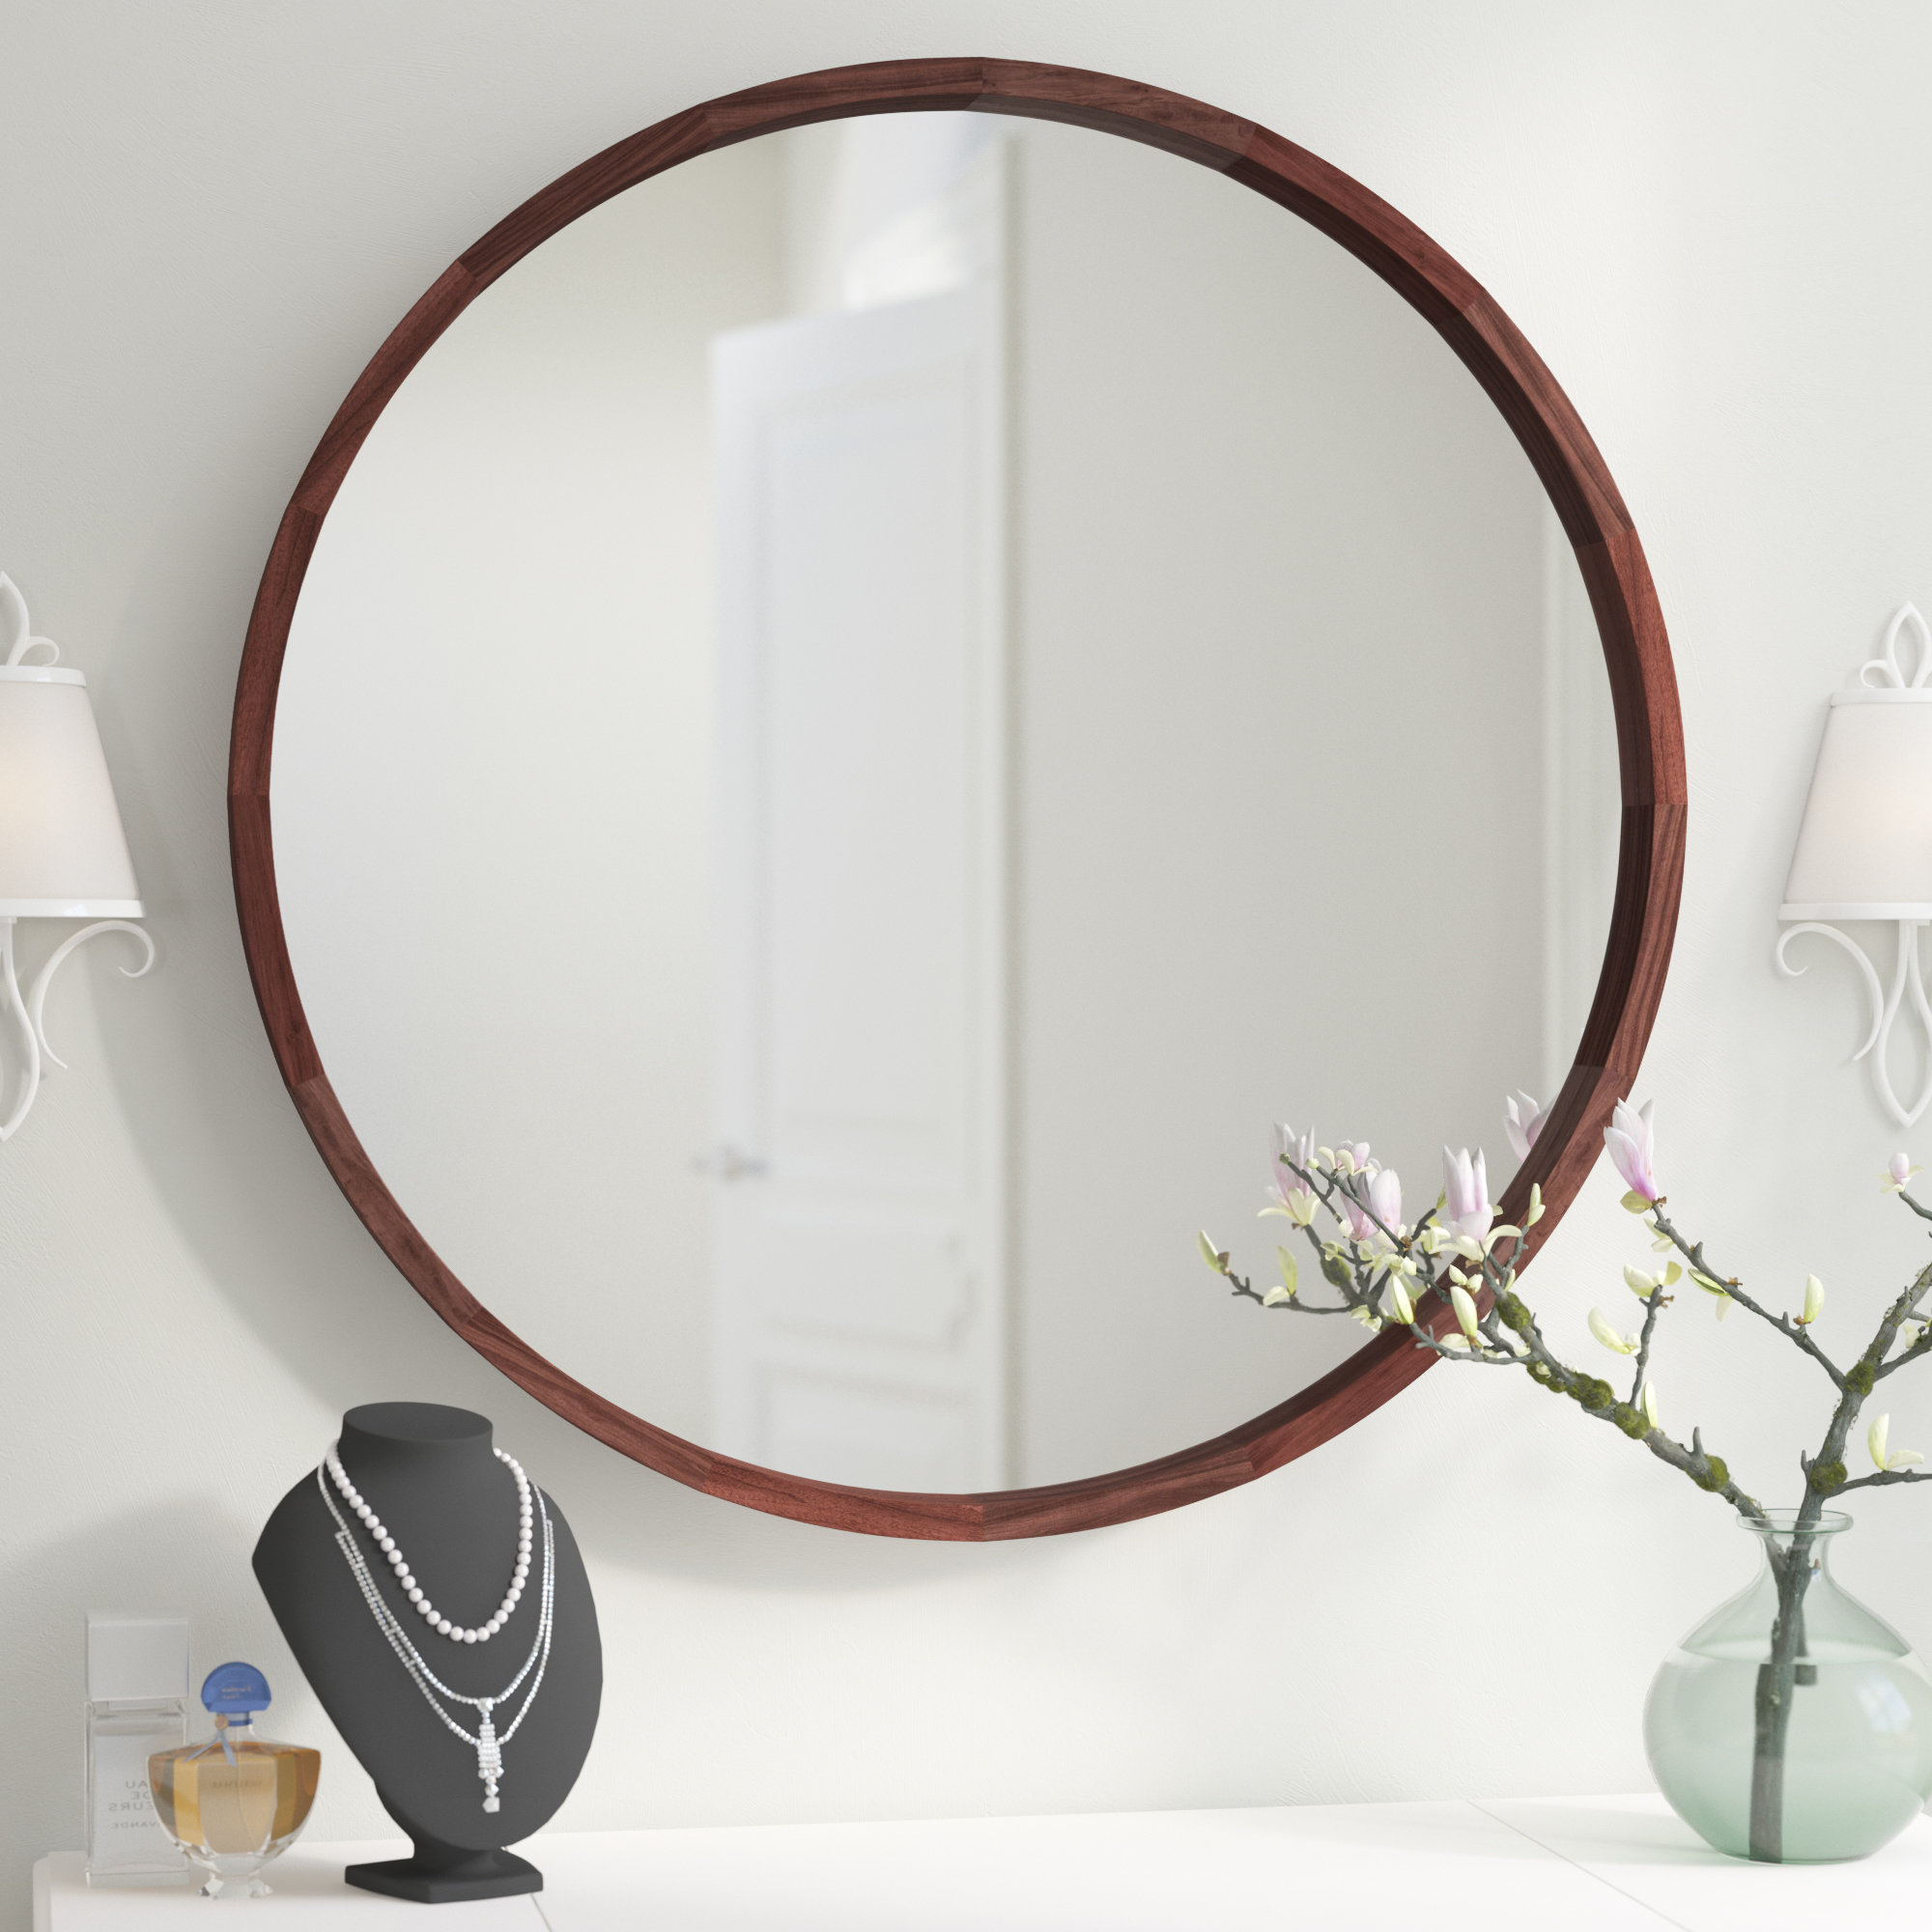 Best And Newest Loftis Modern & Contemporary Accent Wall Mirror Within Levan Modern & Contemporary Accent Mirrors (View 6 of 20)